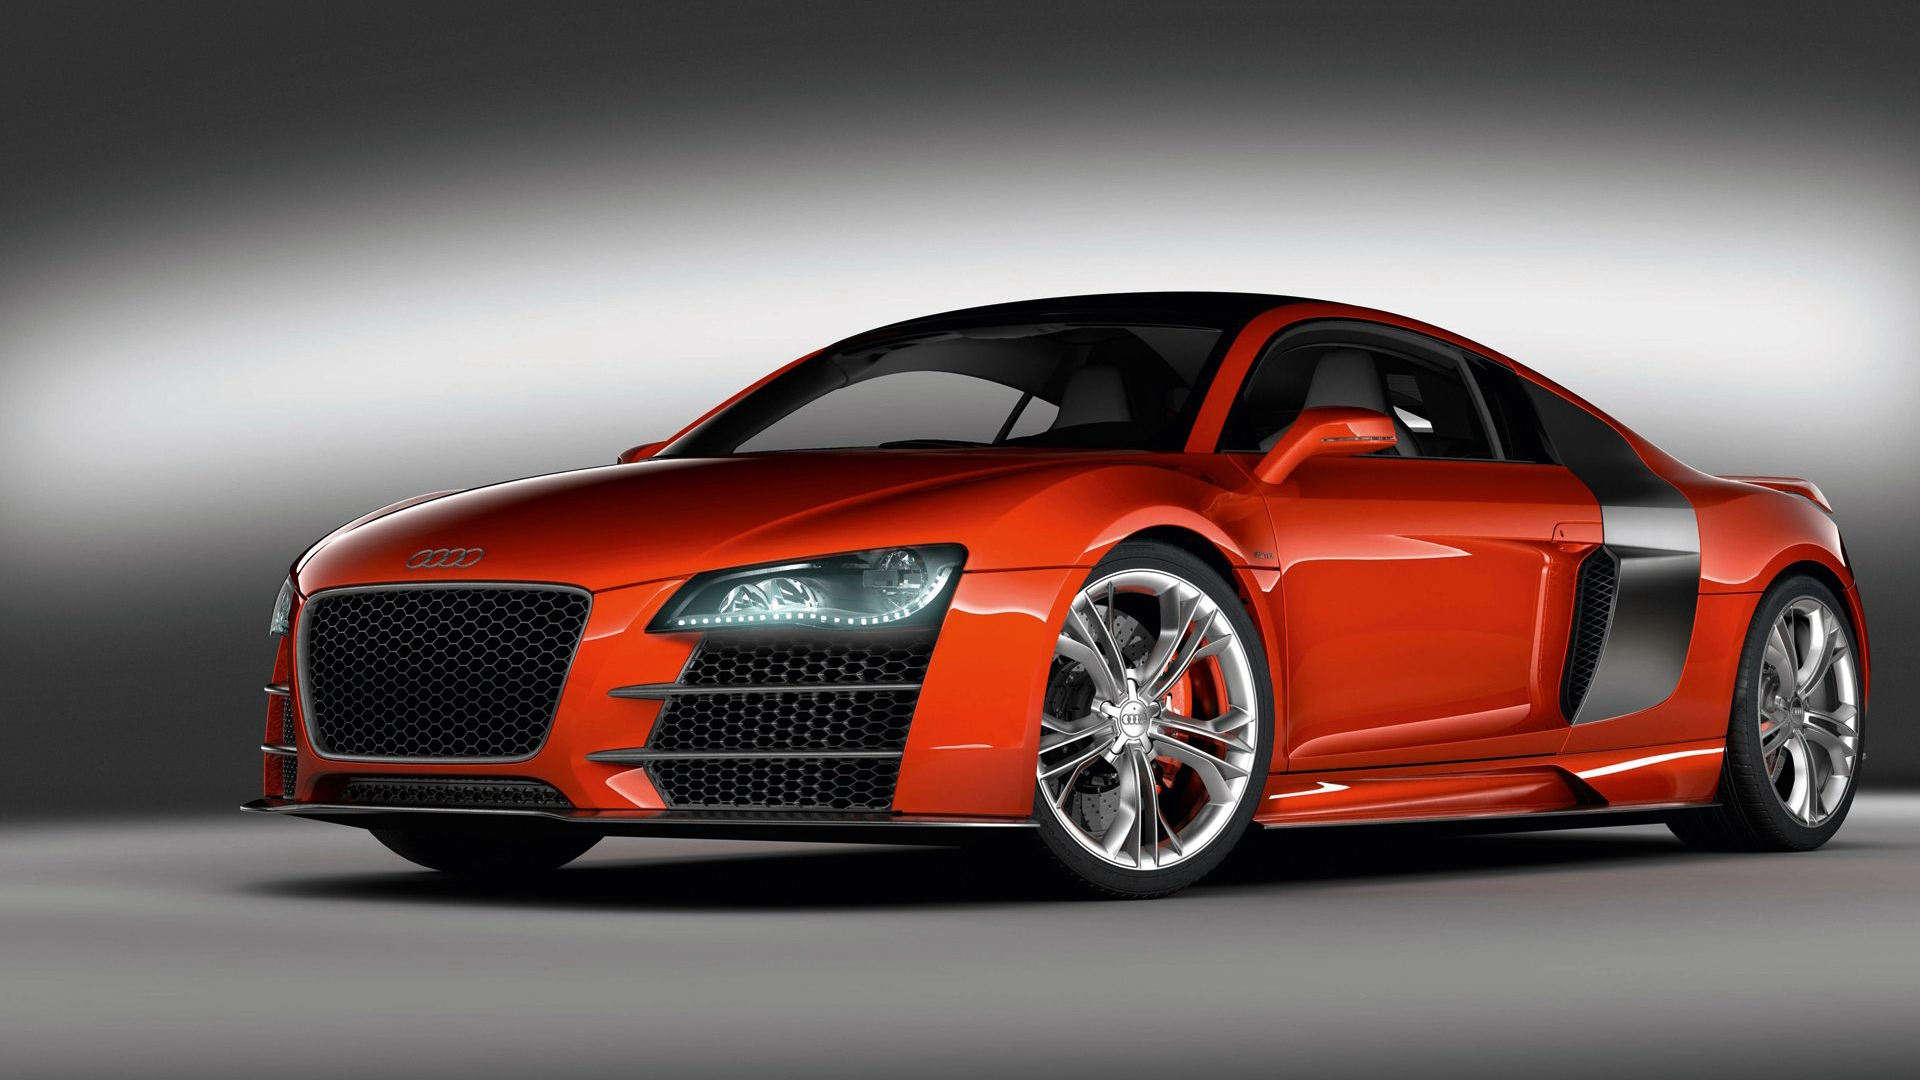 Audi R8 1080p Wallpapers | HD Wallpapers